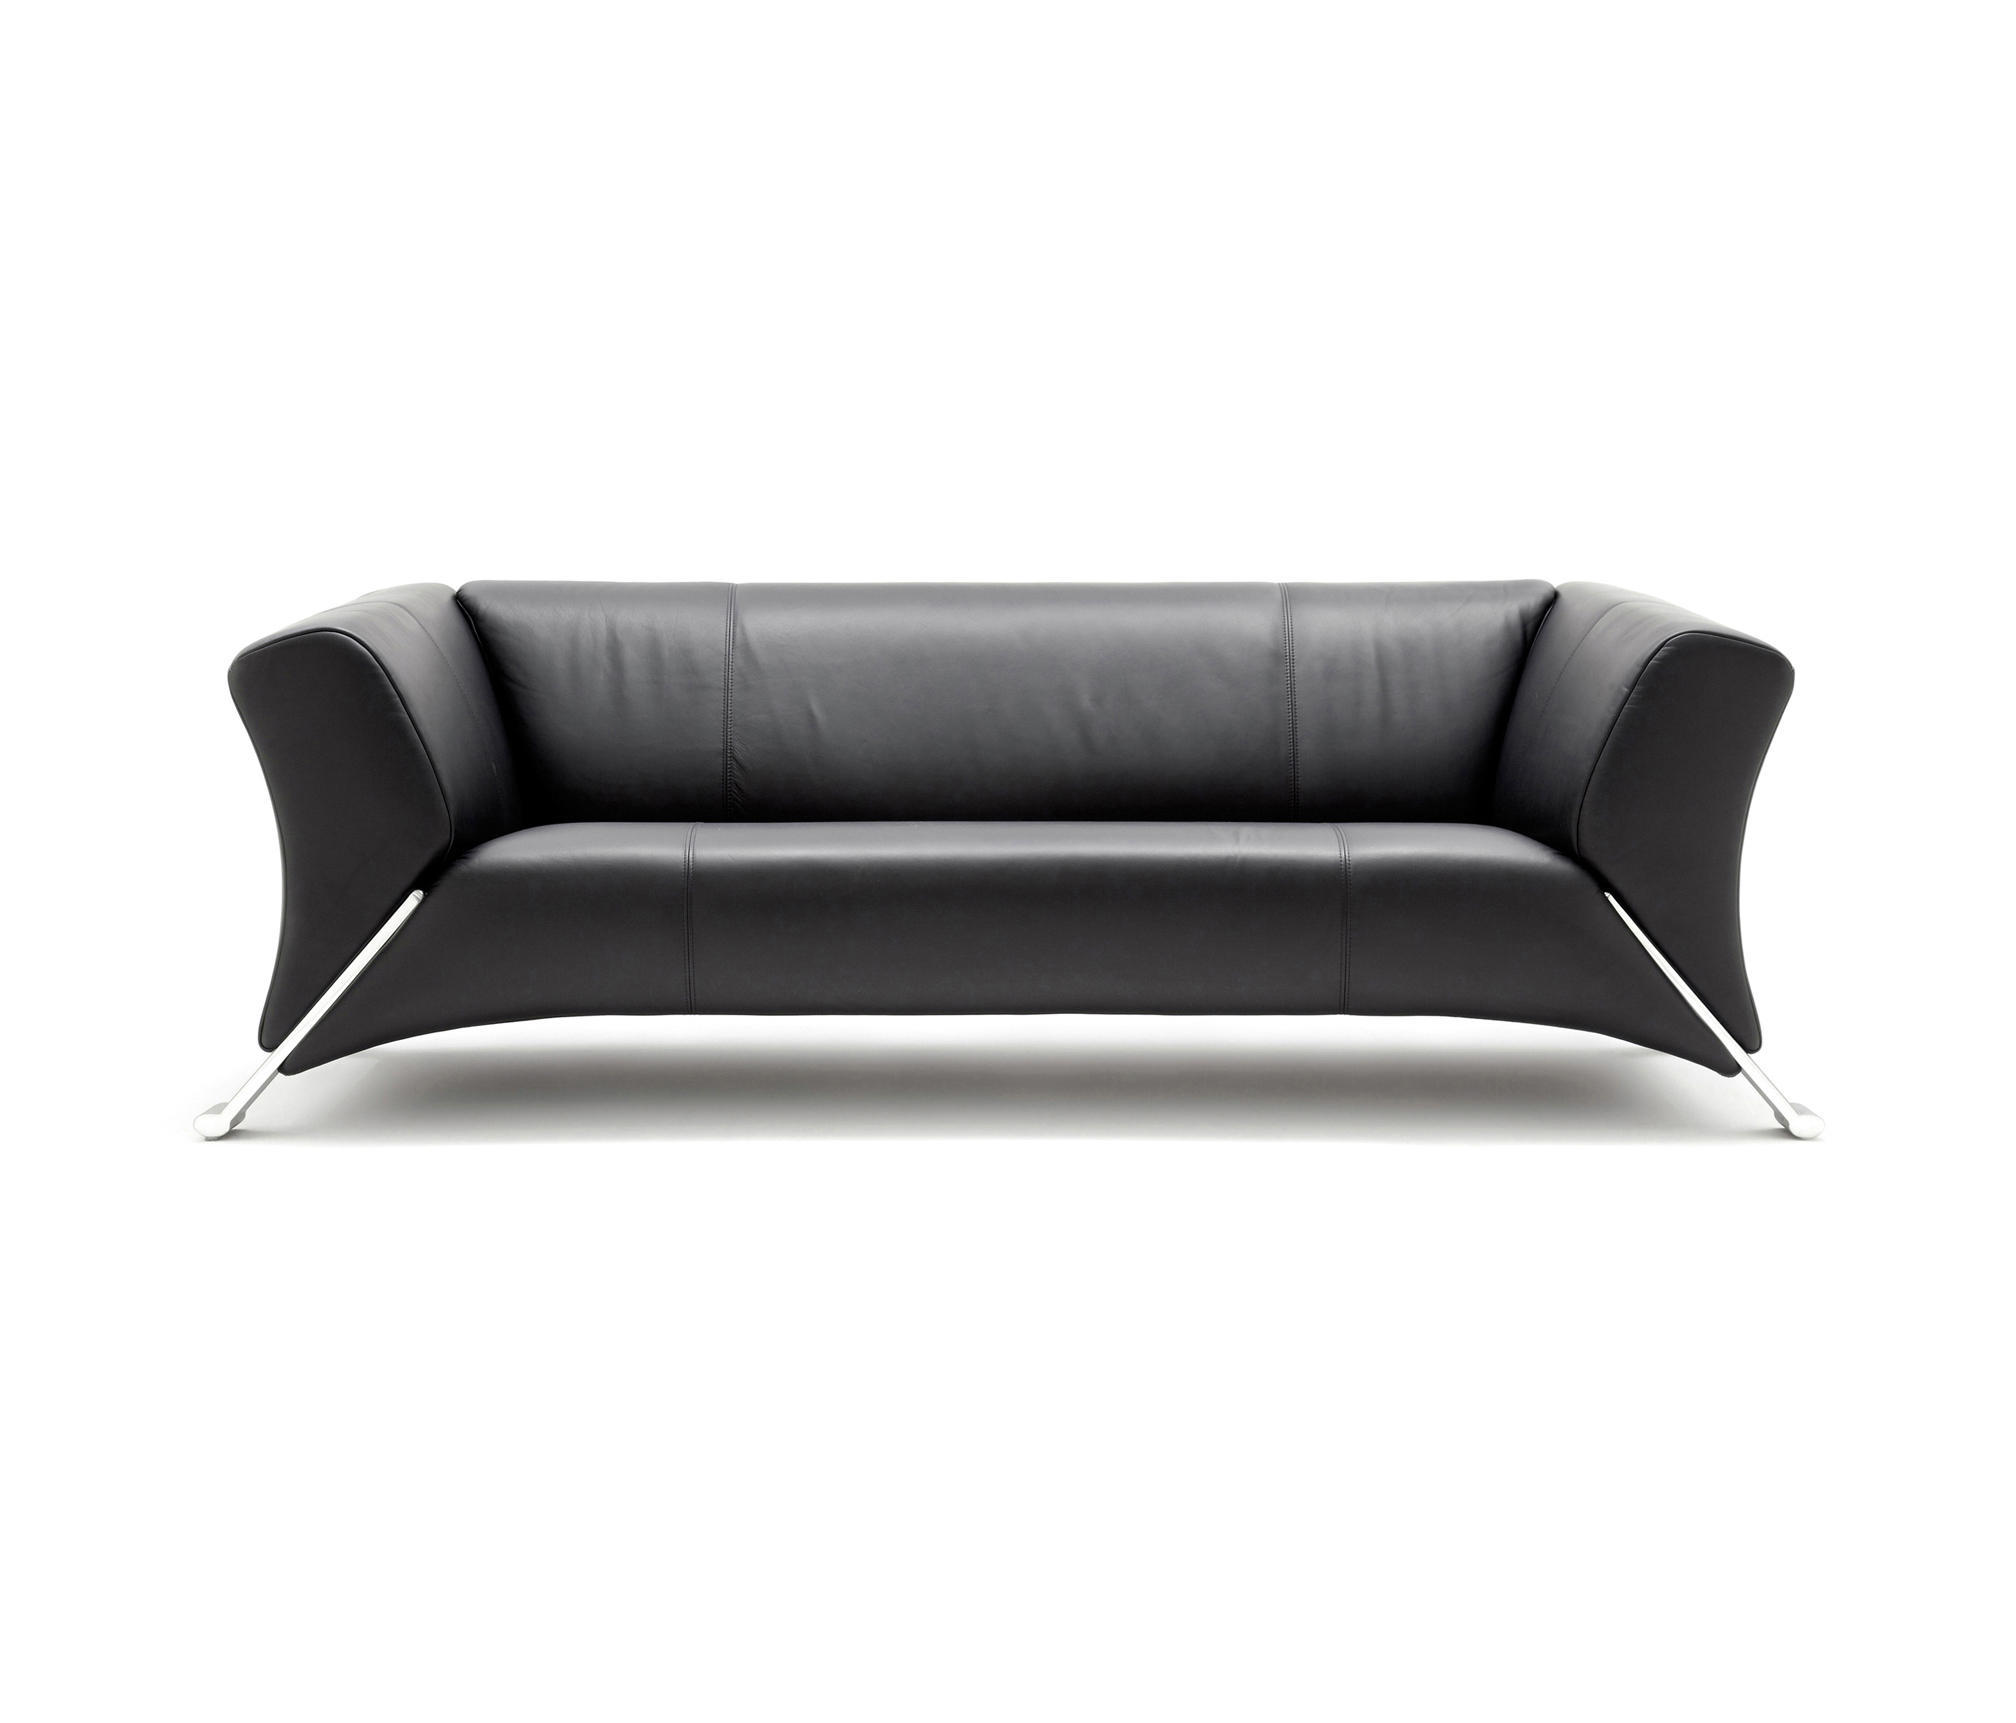 Rolf benz 322 loungesofas von rolf benz architonic for Rolf benz katalog